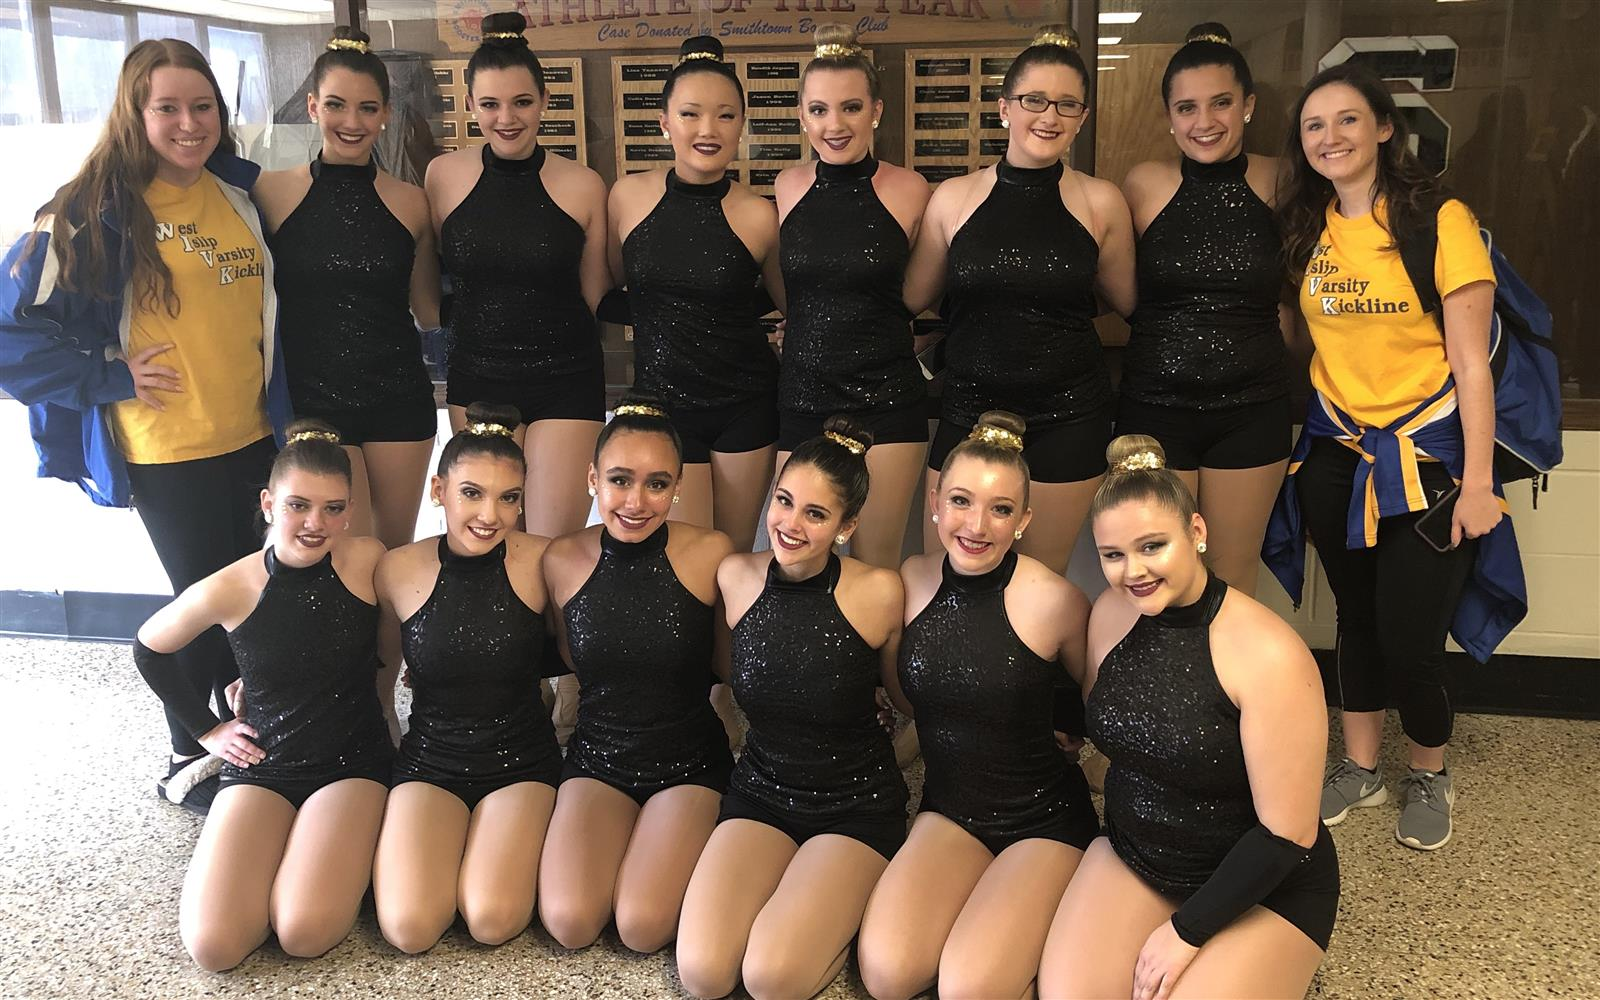 Kickline Team Earns Fifth Place at Championships